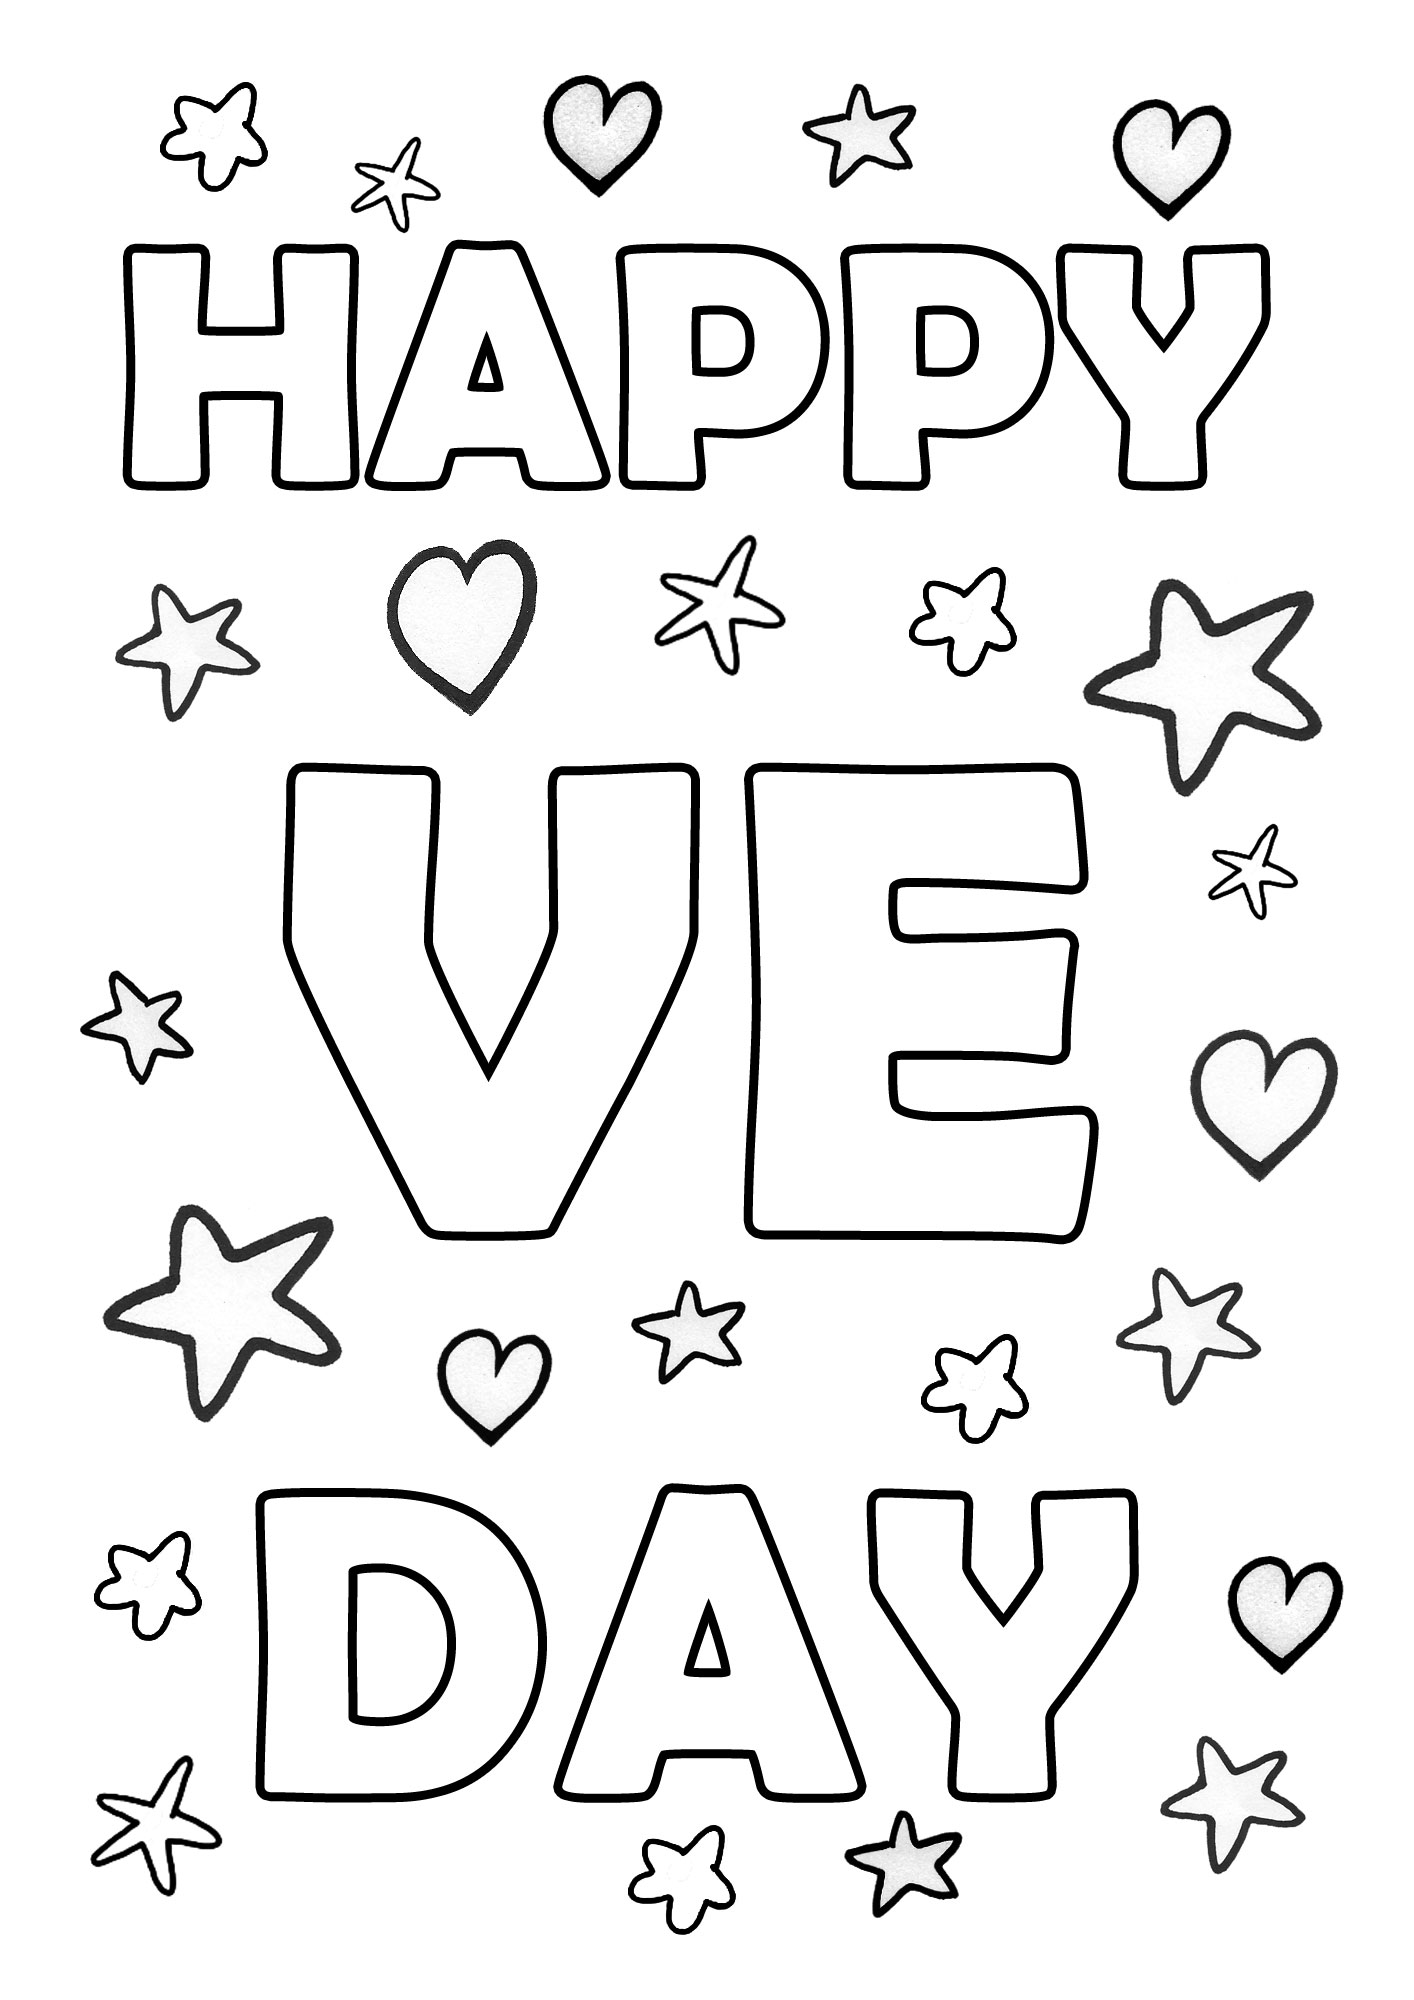 Printable colouring page saying happy VE day